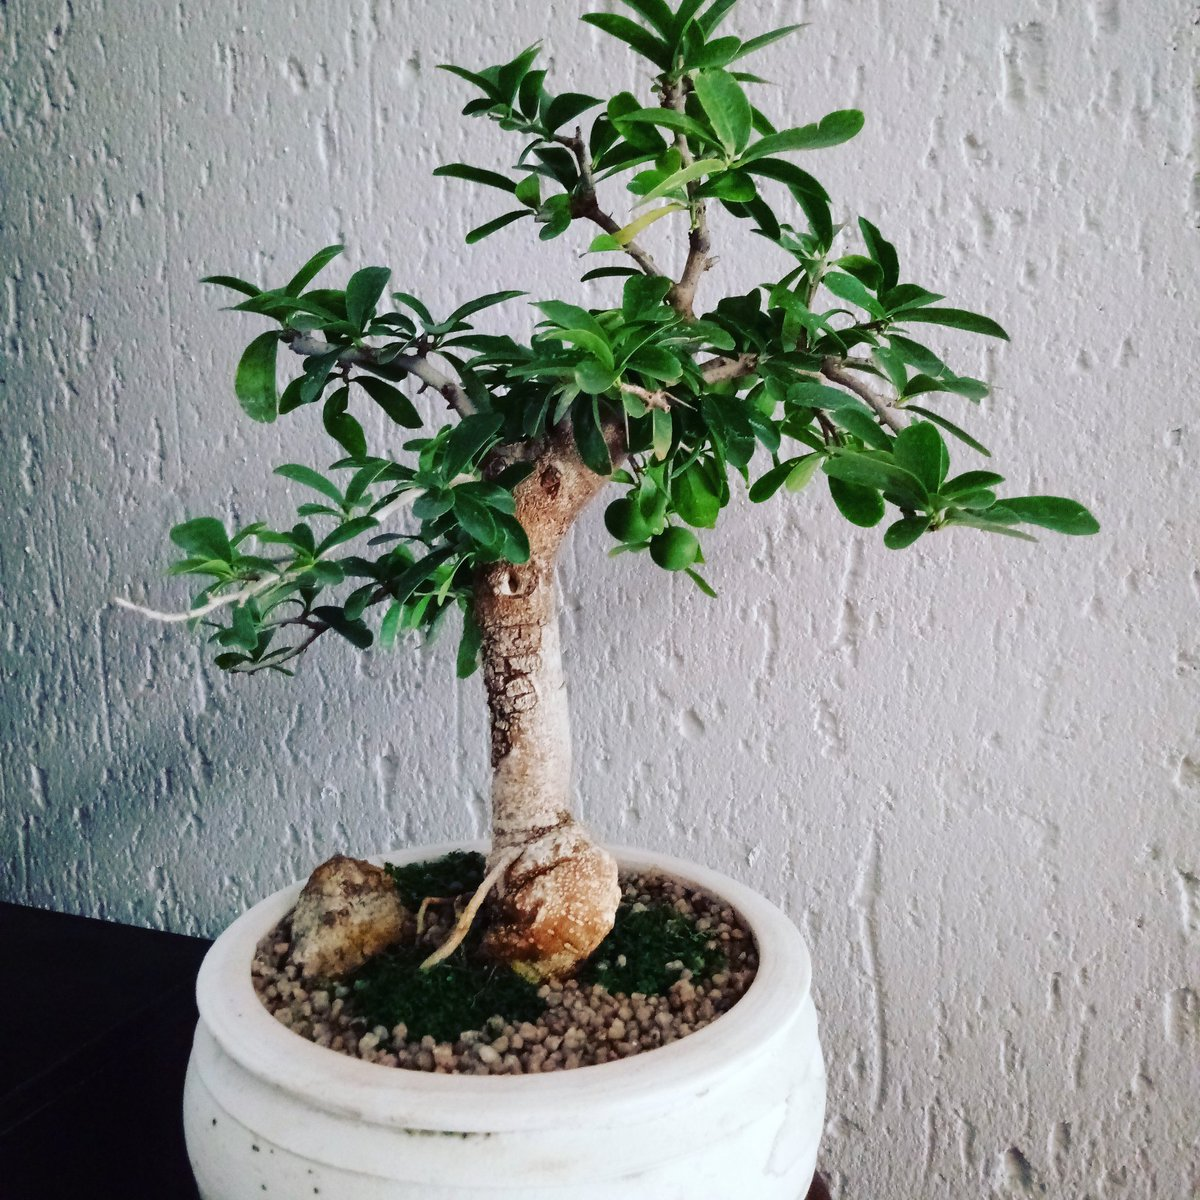 Haylstorm On Twitter Spoiled Ourselves With A Fruiting Kei Apple Bonsai Tree 3 It S So Beautiful Don T You Think Bonsai Minifruit